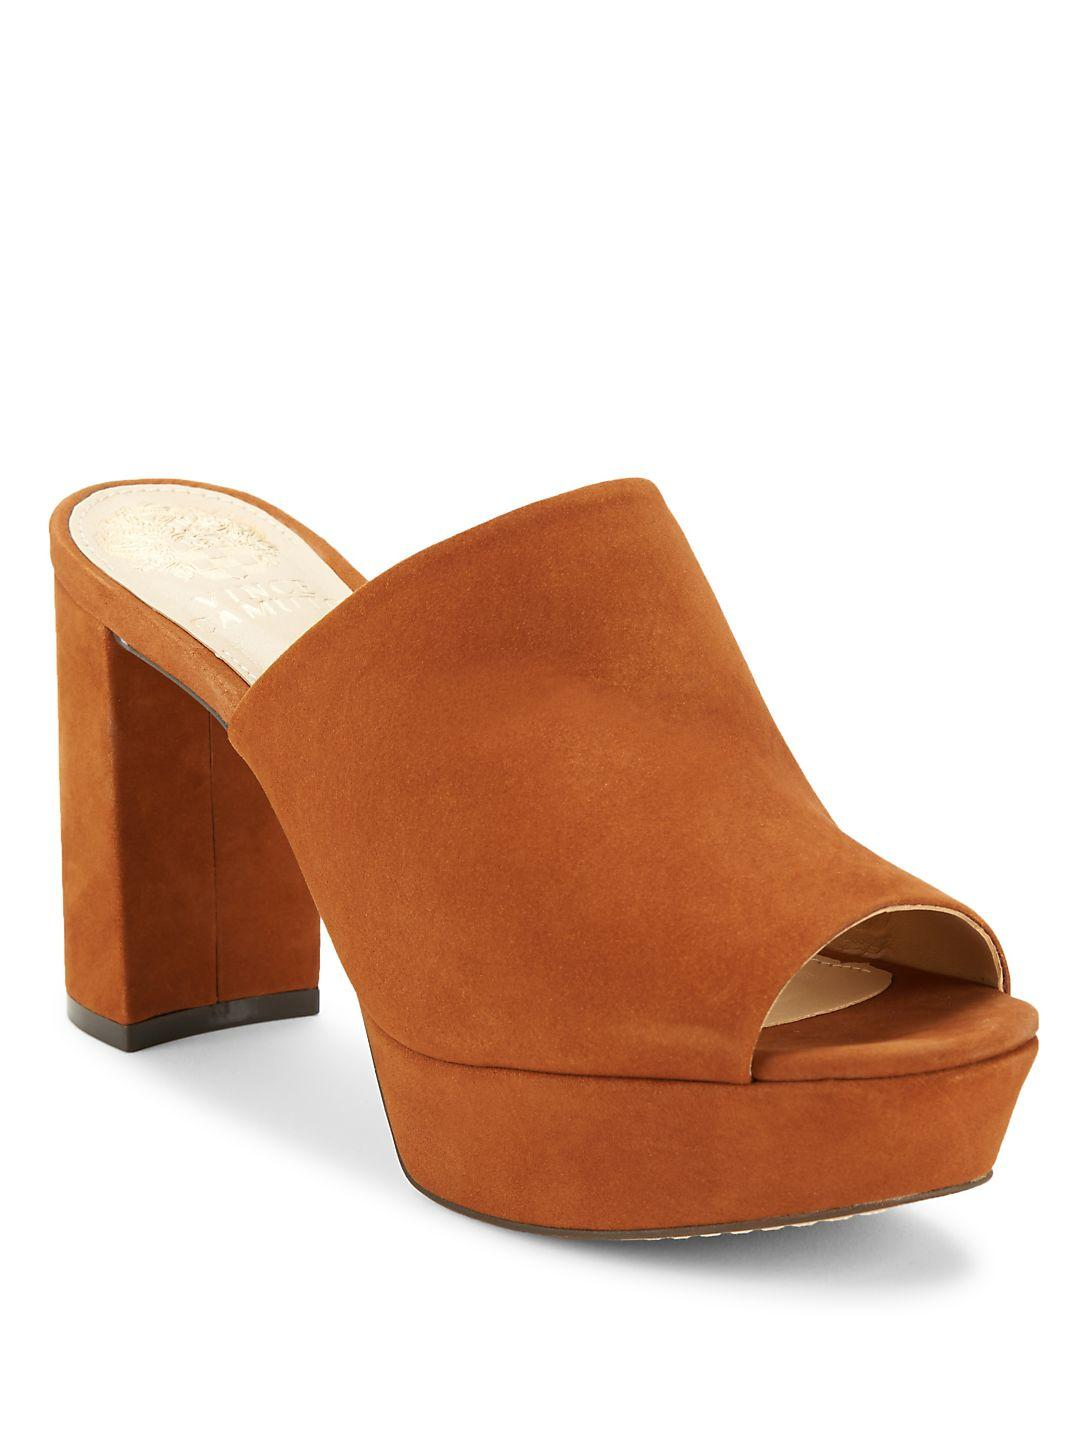 d9138388a90 Lyst - Vince Camuto Basilia Nubuck Leather Platform Mules in Brown